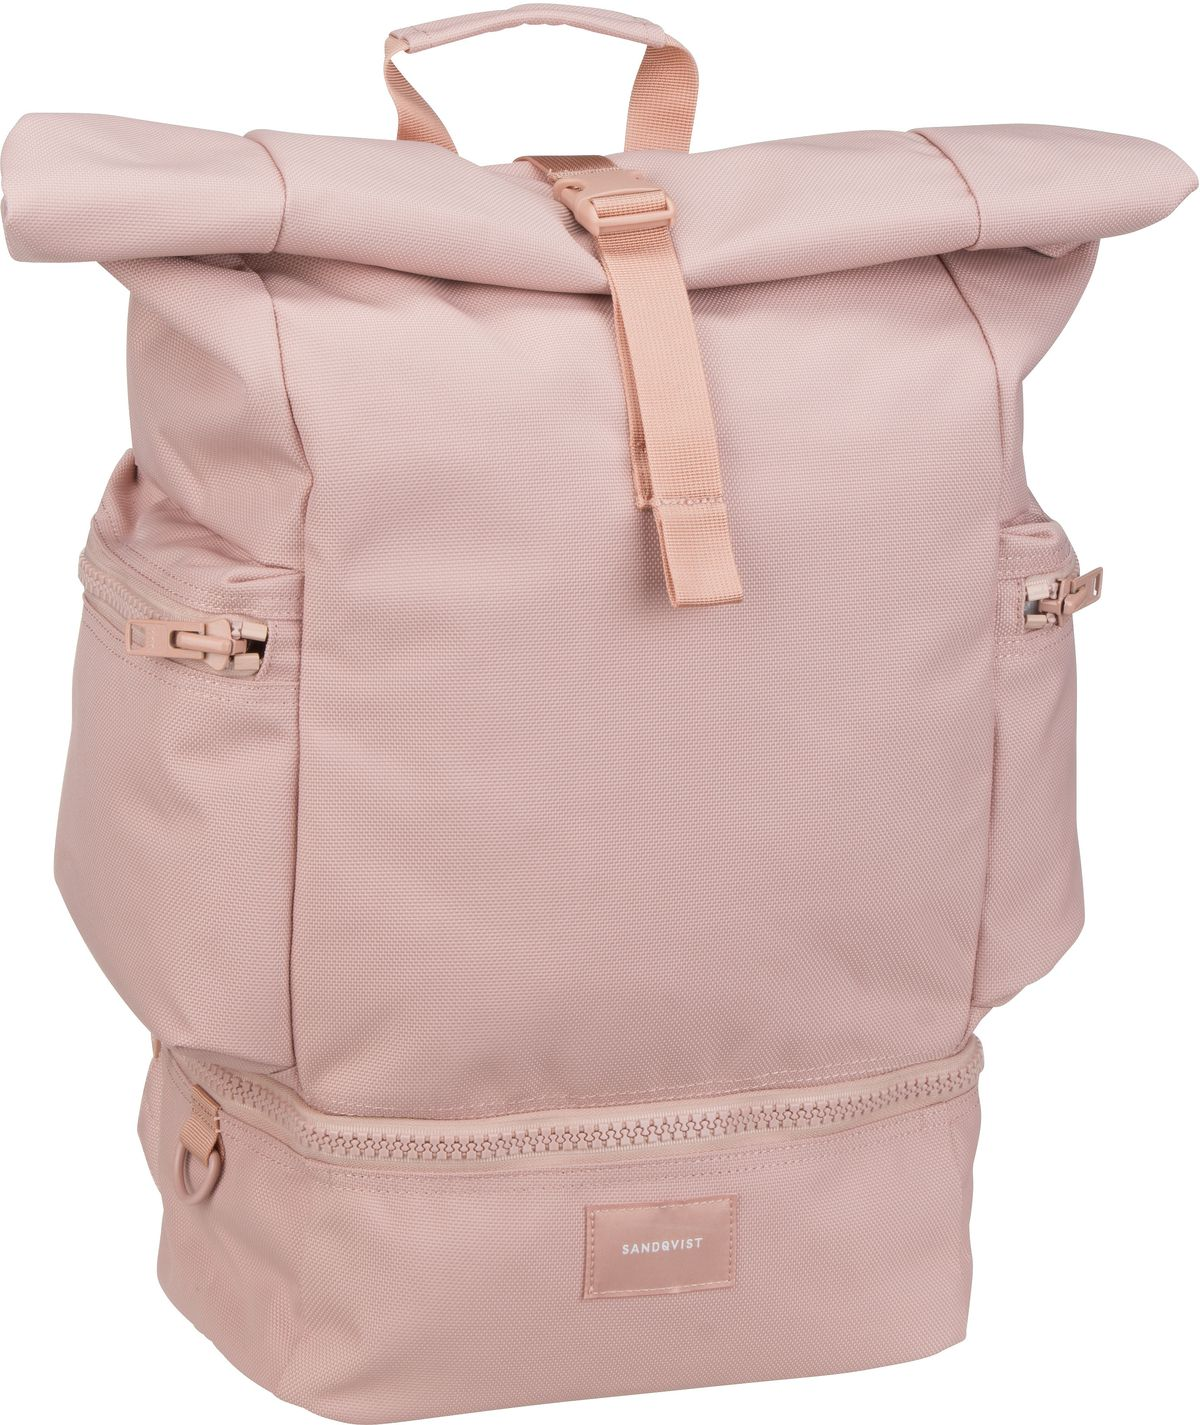 Laptoprucksack Verner Rolltop Backpack Dusty Pink (20 Liter)